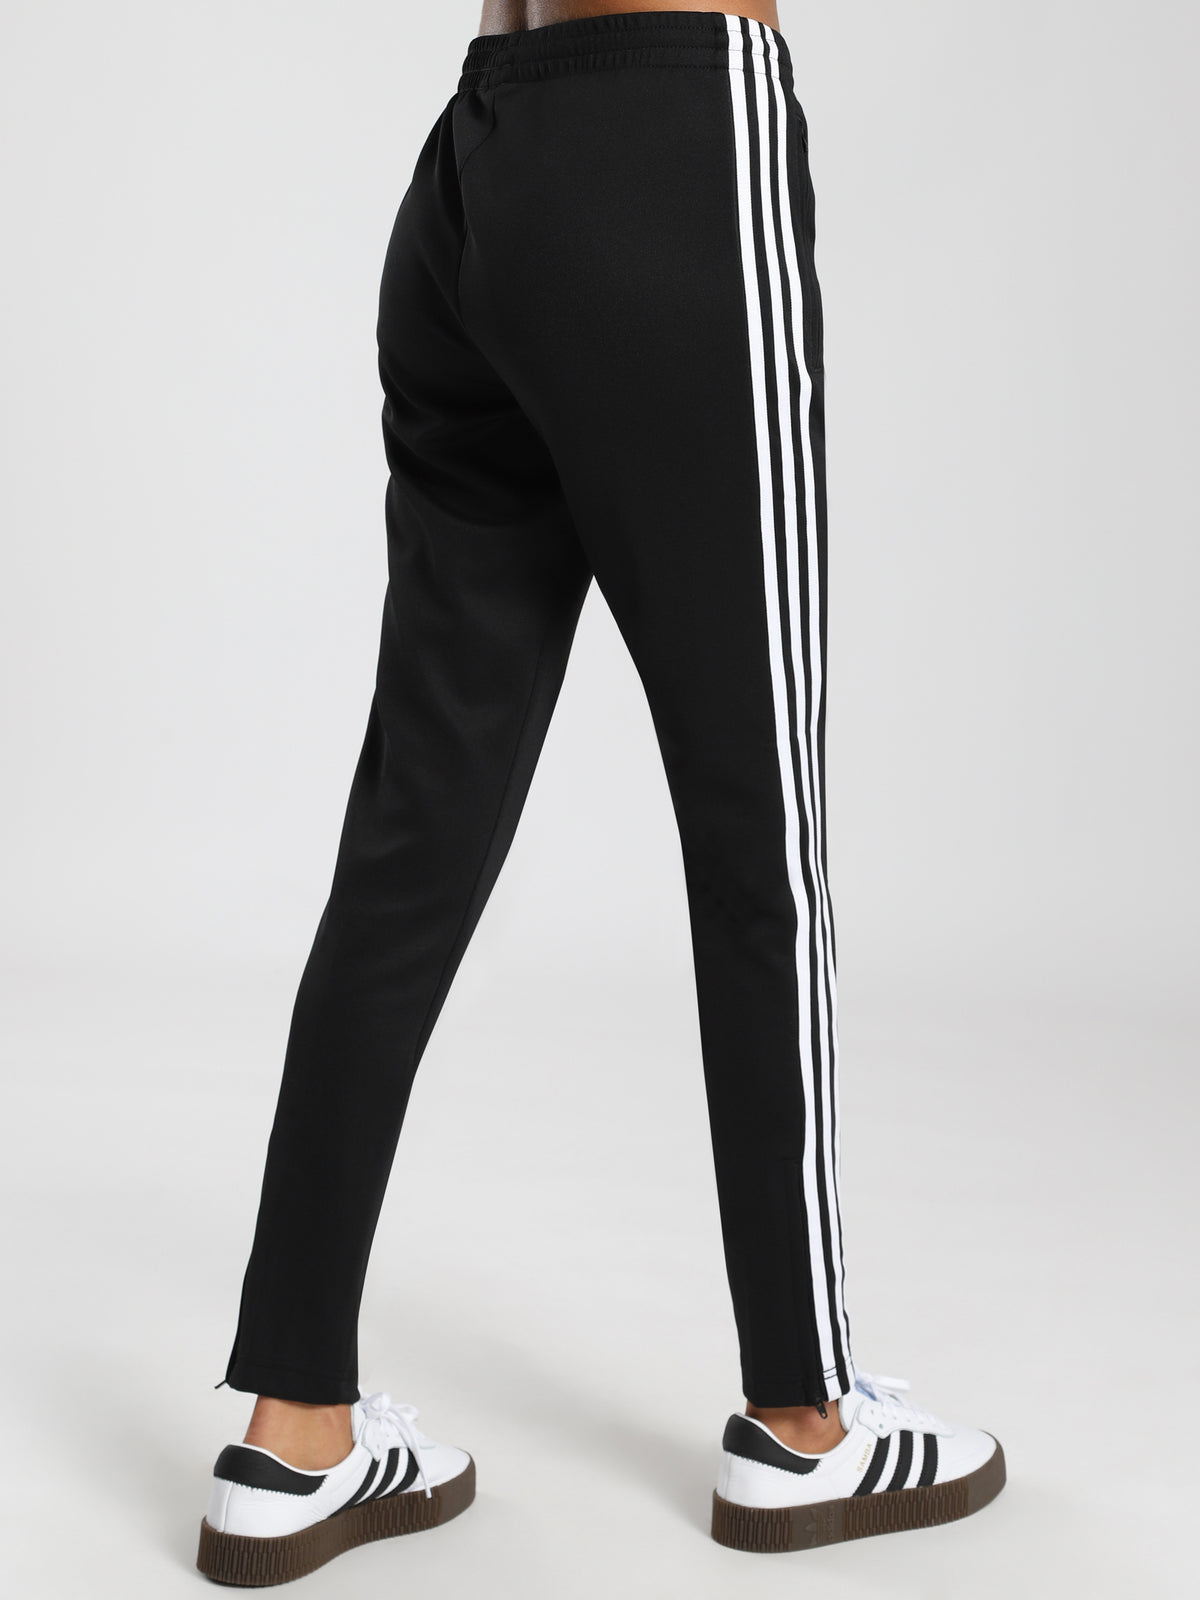 Superstar Track Pants in Black